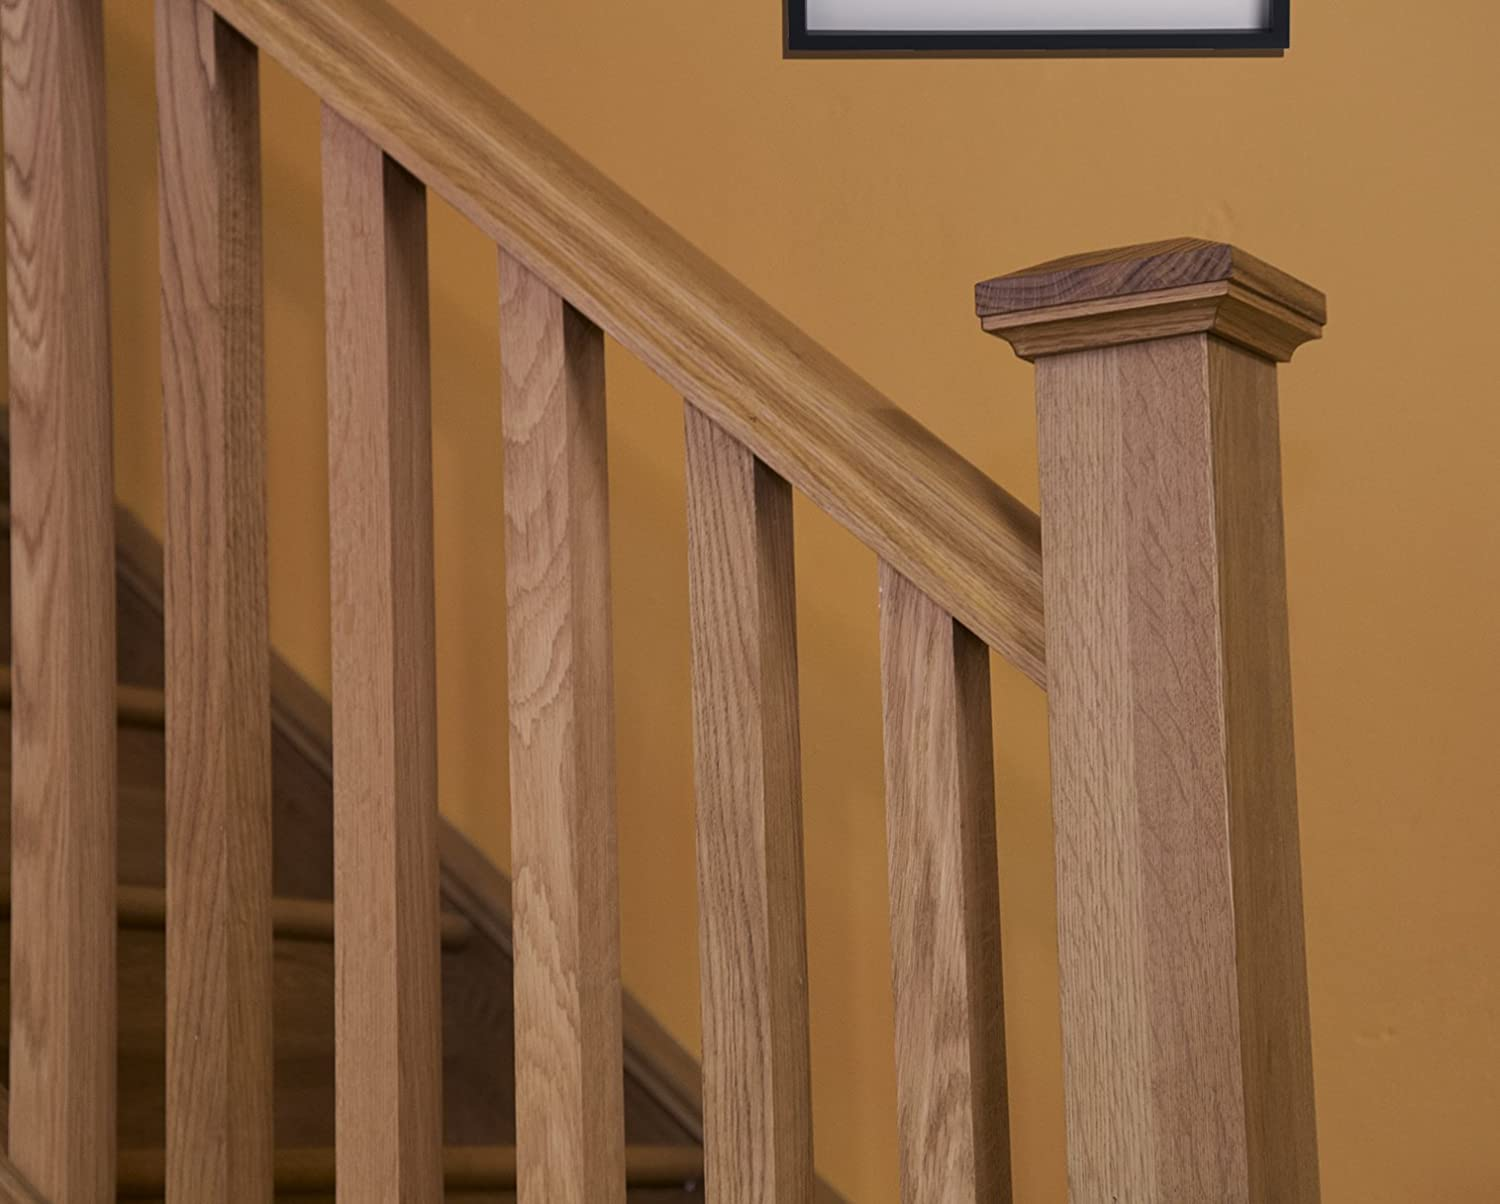 Stair Kit Oak Stair Parts 30 Hand Rails Base Rails Spindles Newels And Pyramid Caps Amazon Co Uk Kitchen Home